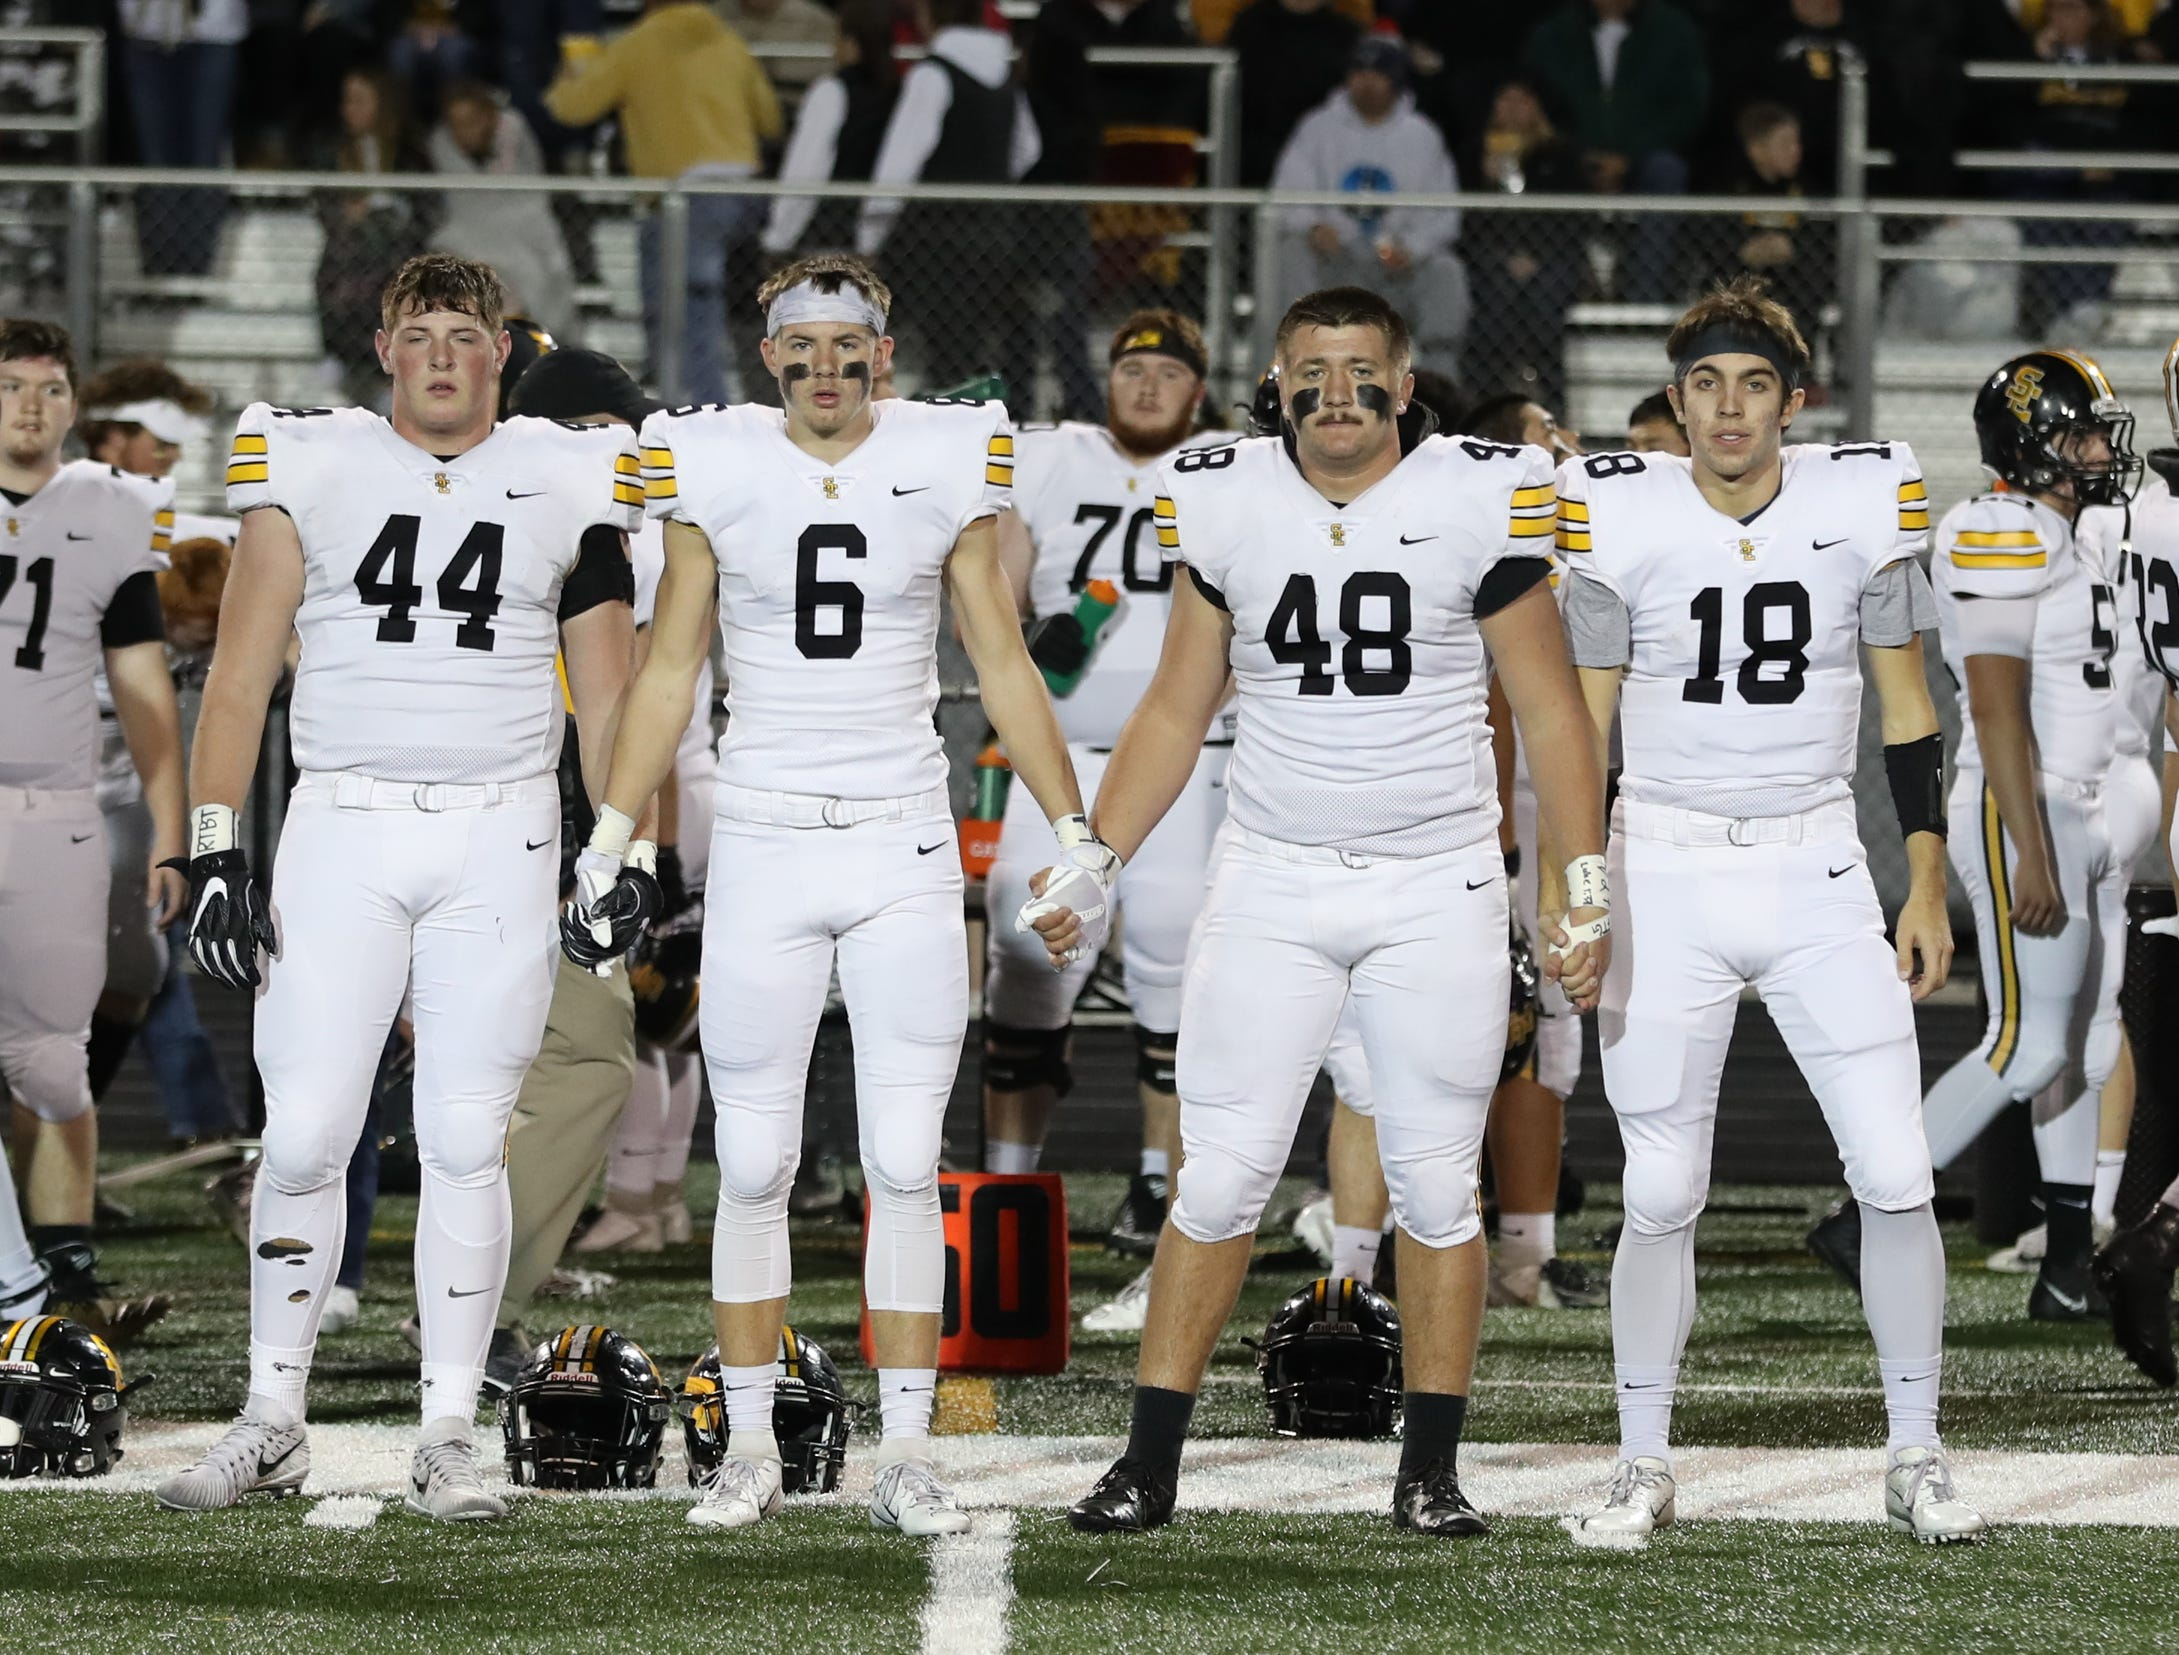 Nov 2, 2018; Johnston, IA, USA; Southeast Polk Rams captains enter the field before their game with the Johnston Dragons at Johnston Stadium. The Rams beat the Dragons 21-7.